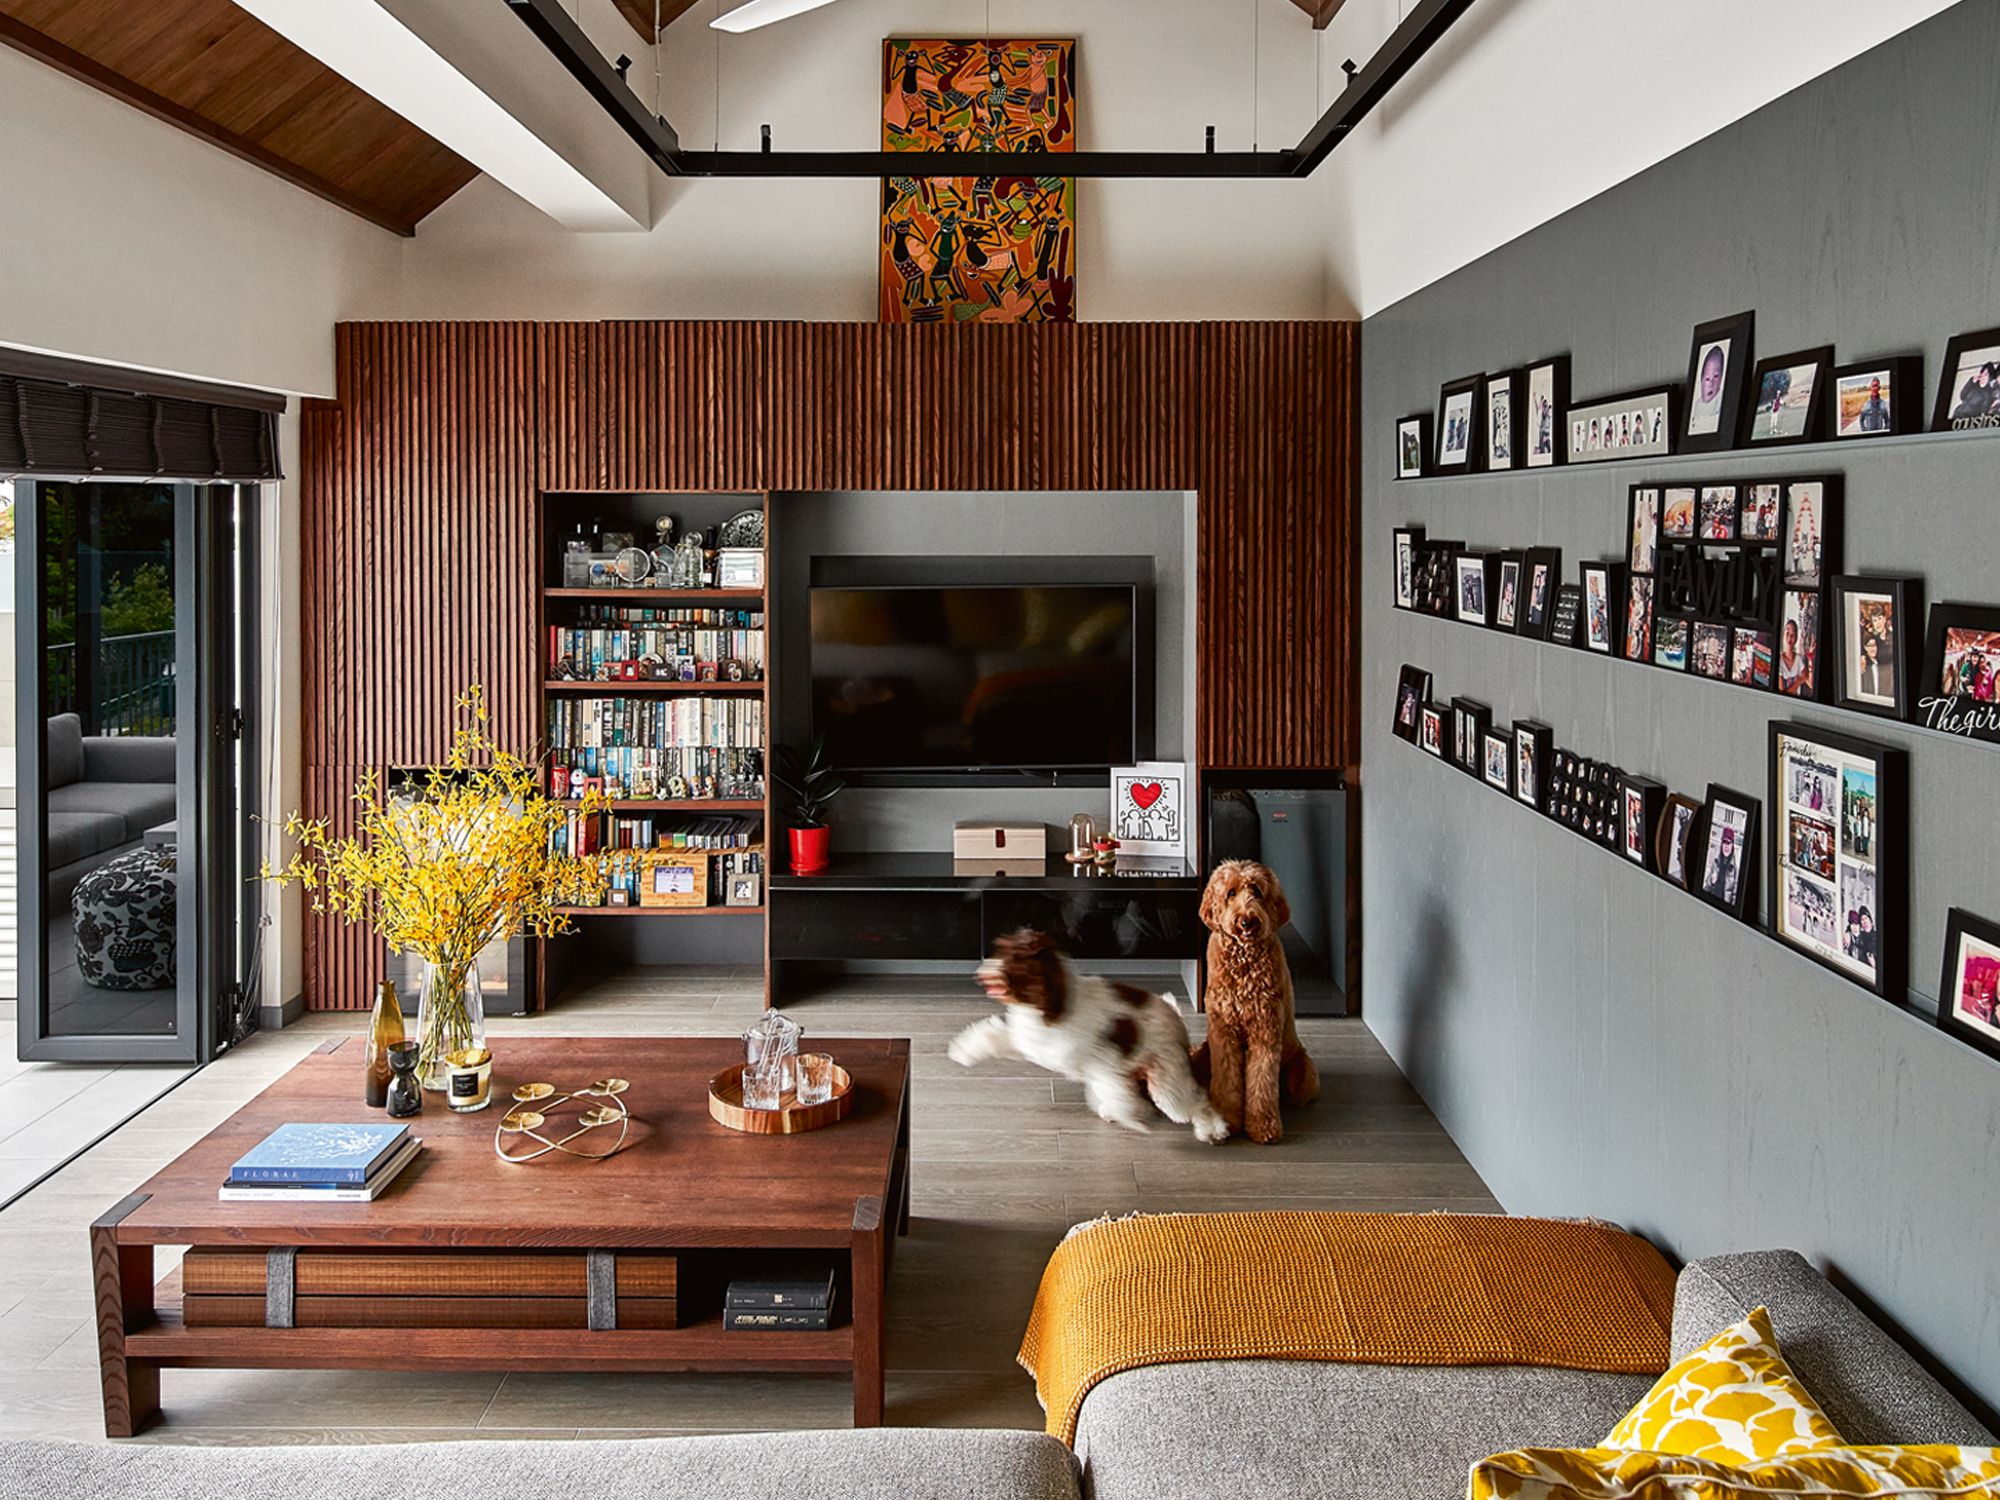 Home Tour: A Family's Dog-Friendly Semi Detached House